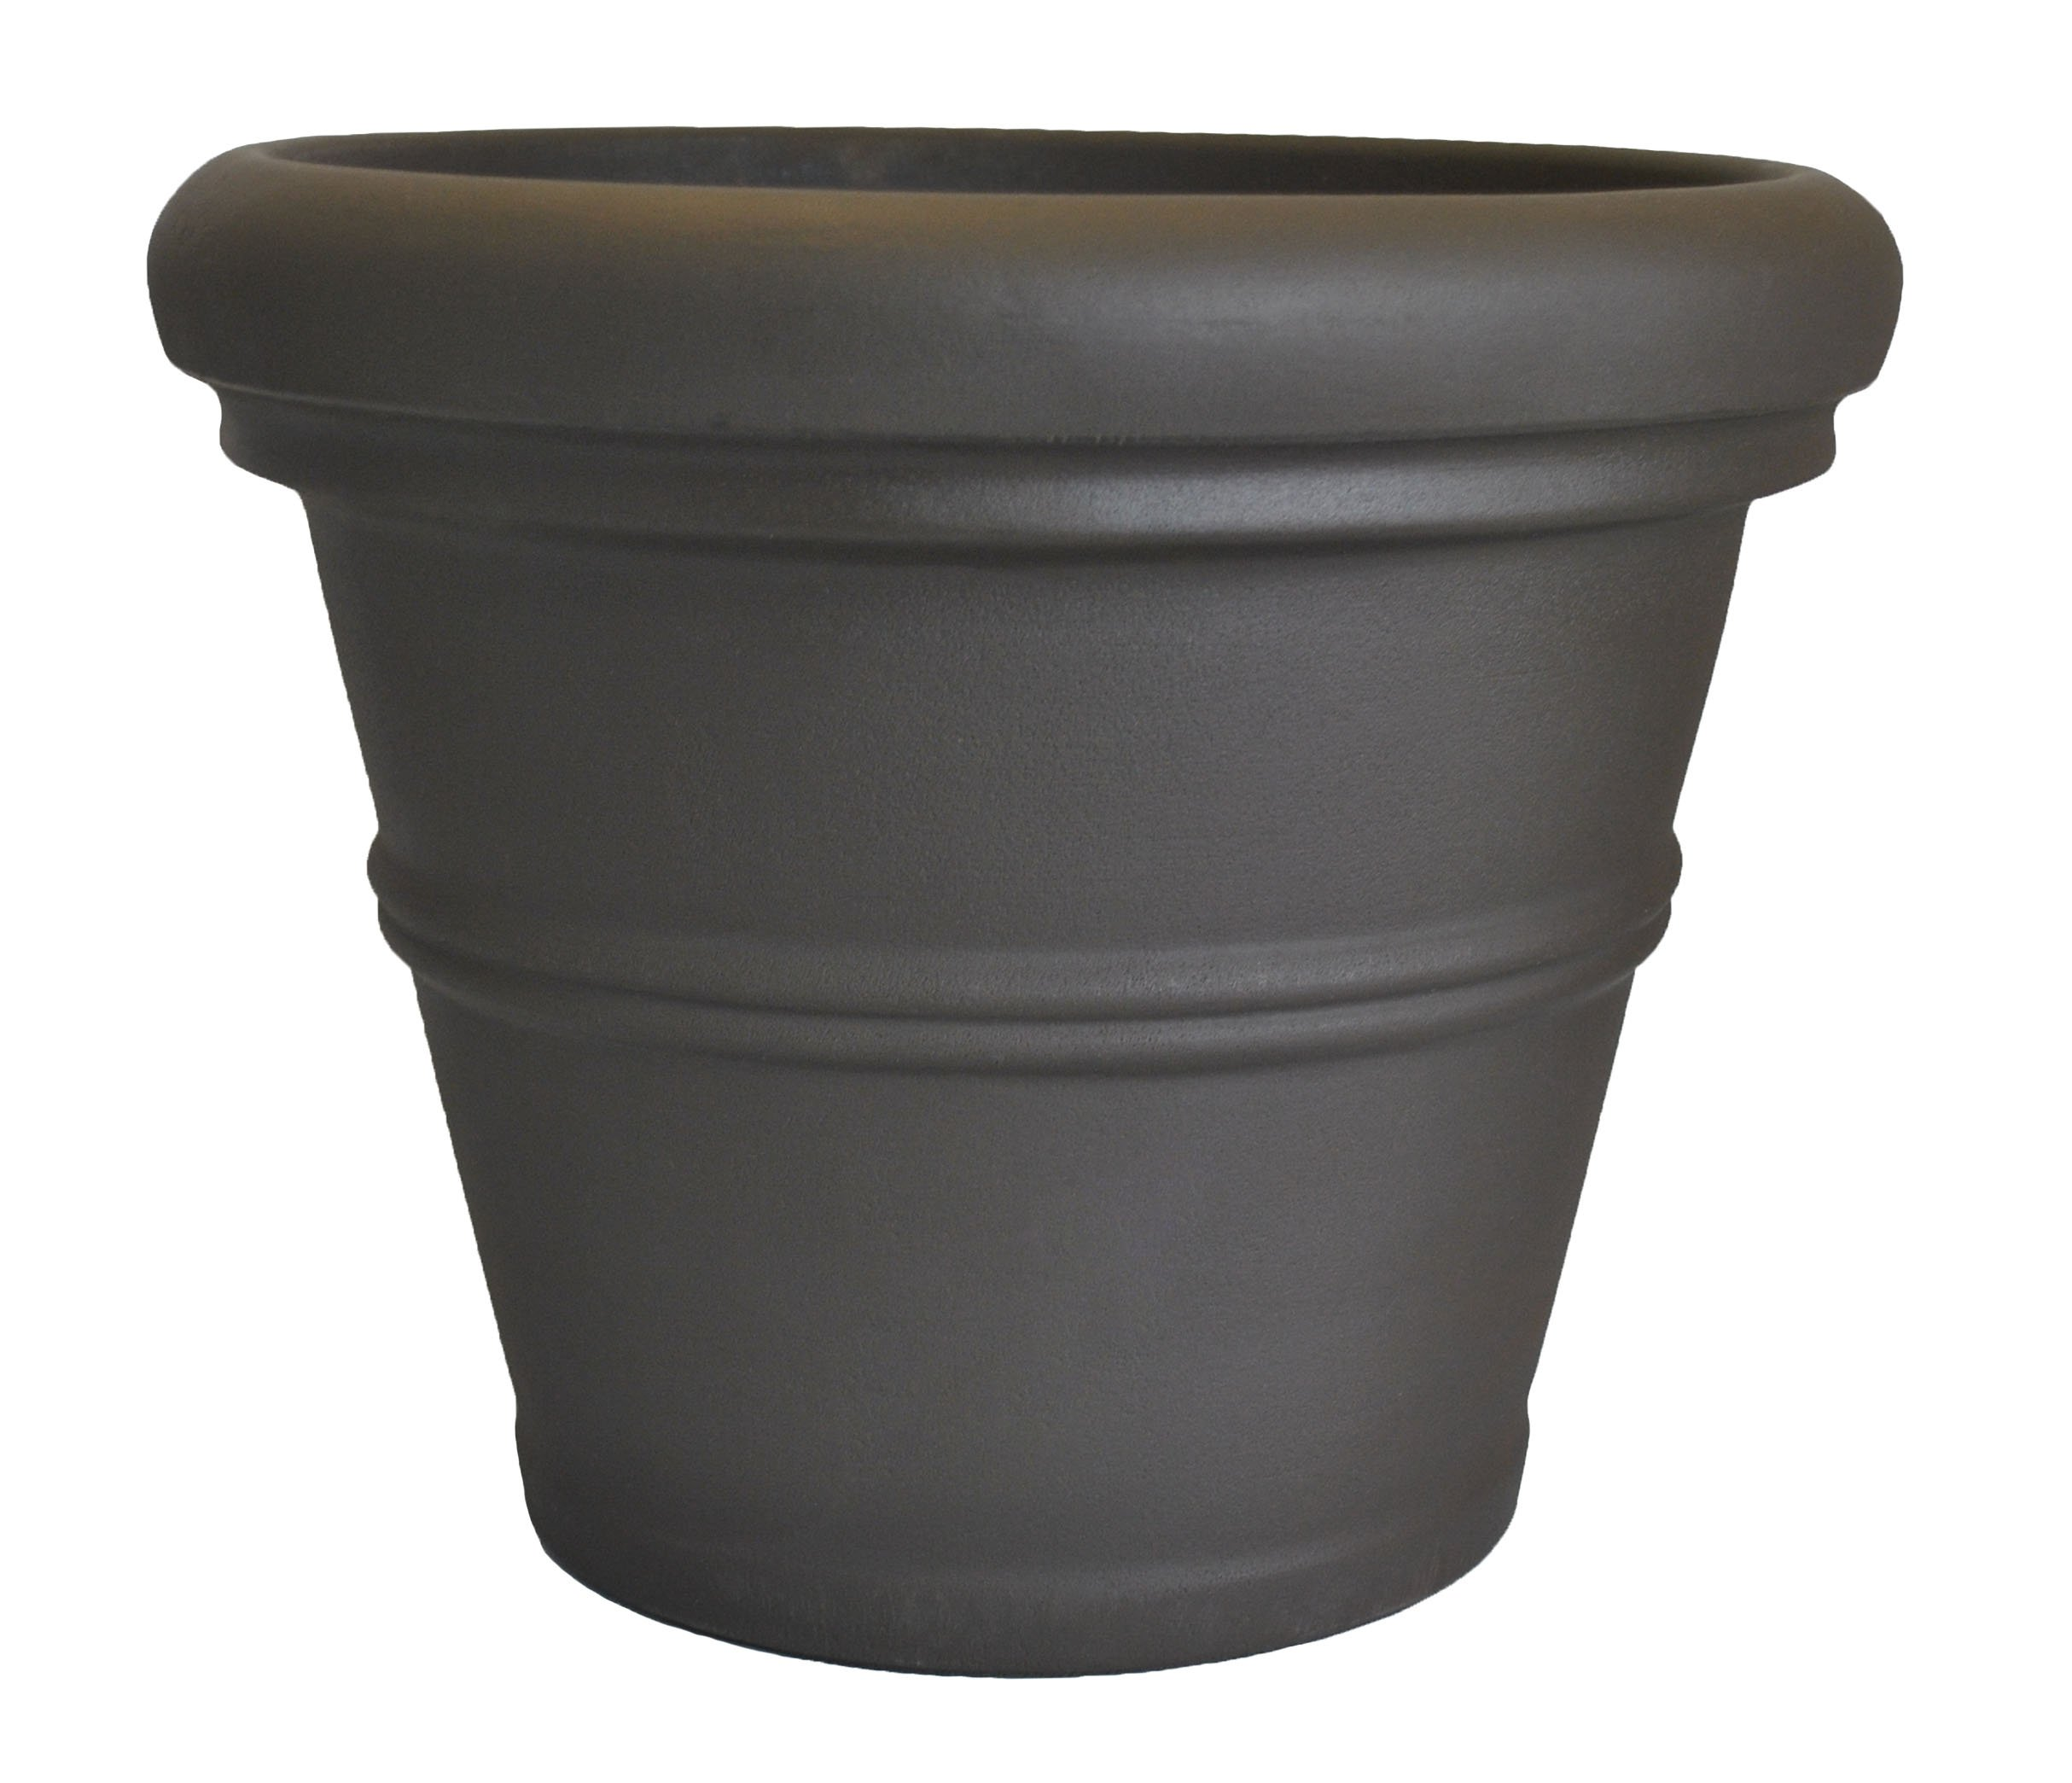 Tusco Products RR30ES Rolled Rim Garden Pot, 30-Inch, Espresso by Tusco Products